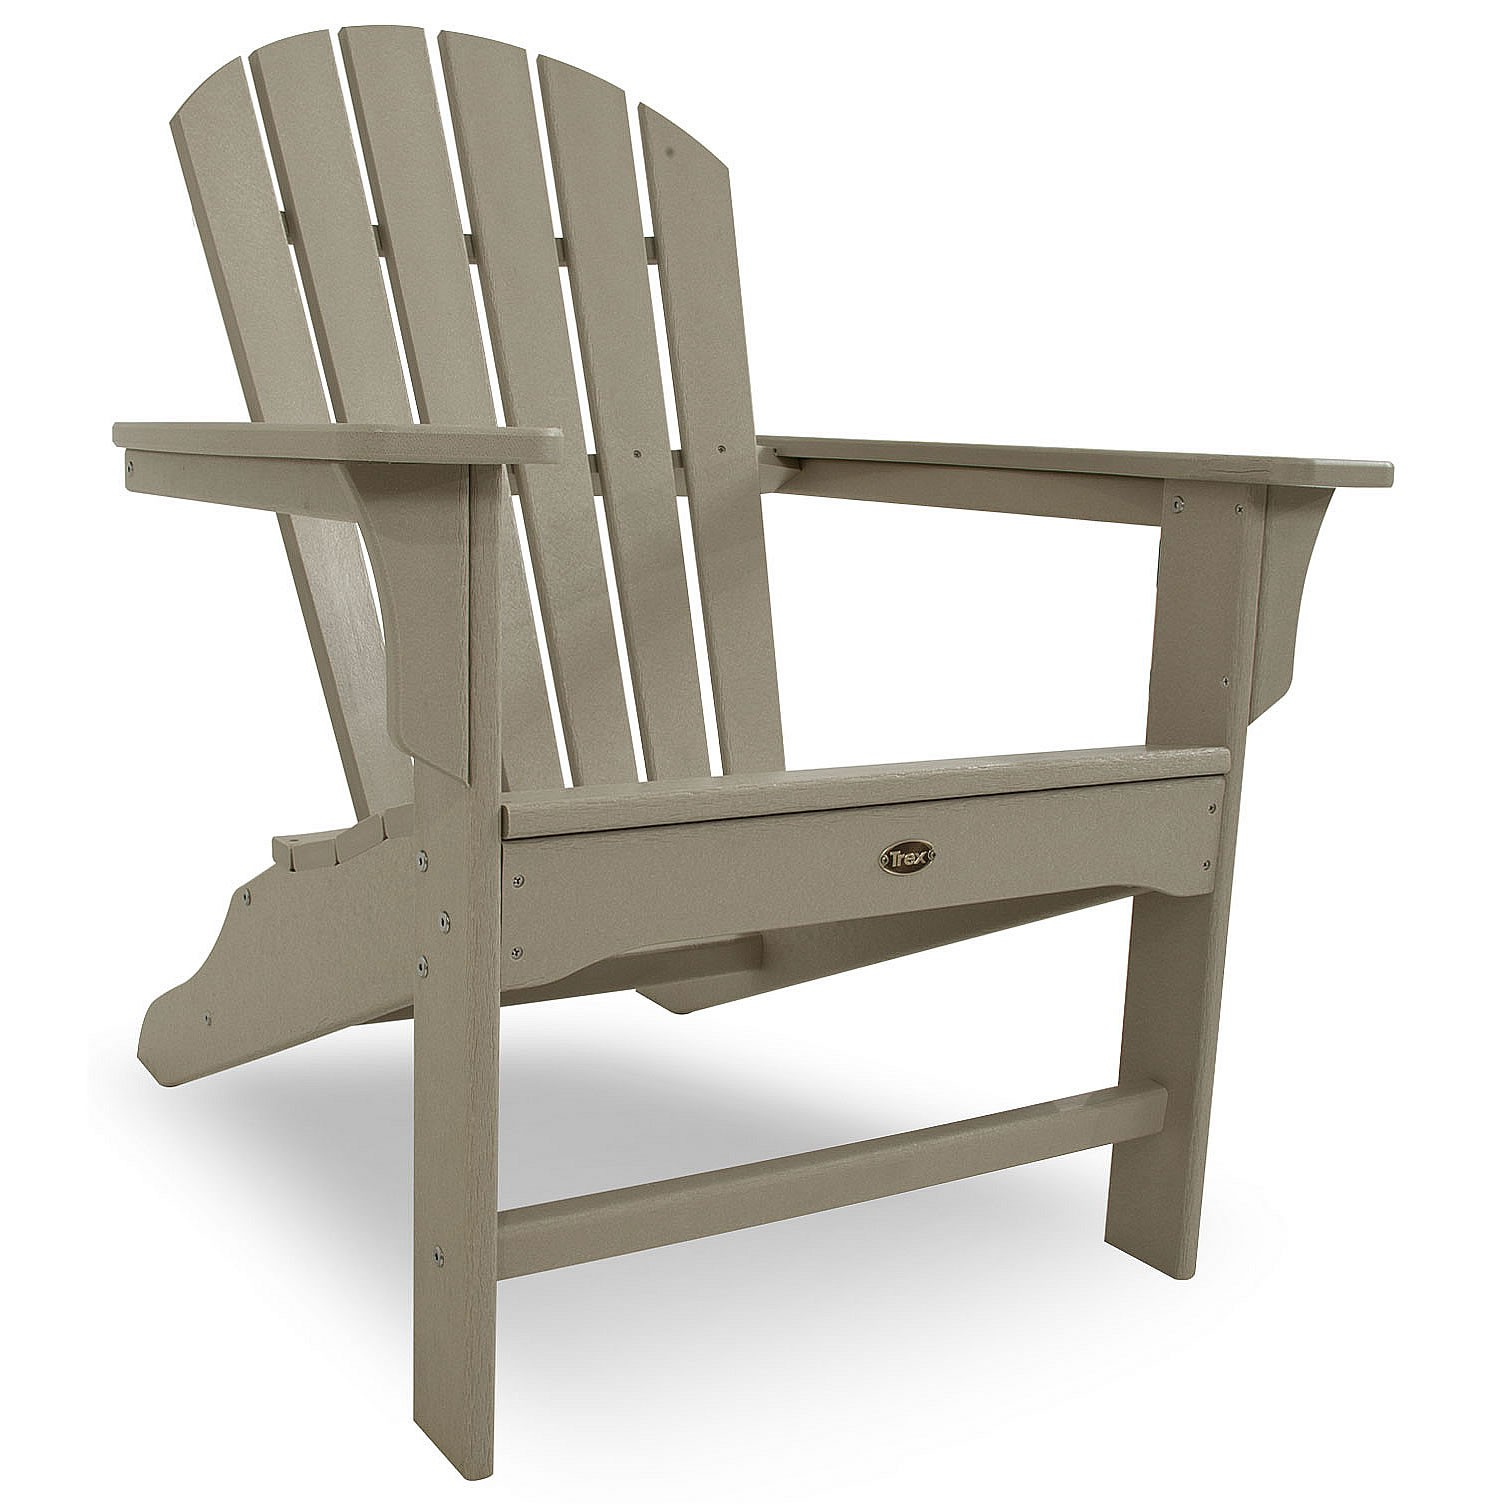 Trex Rocking Chairs Trex Outdoor Furniture Cape Cod Adirondack Chair